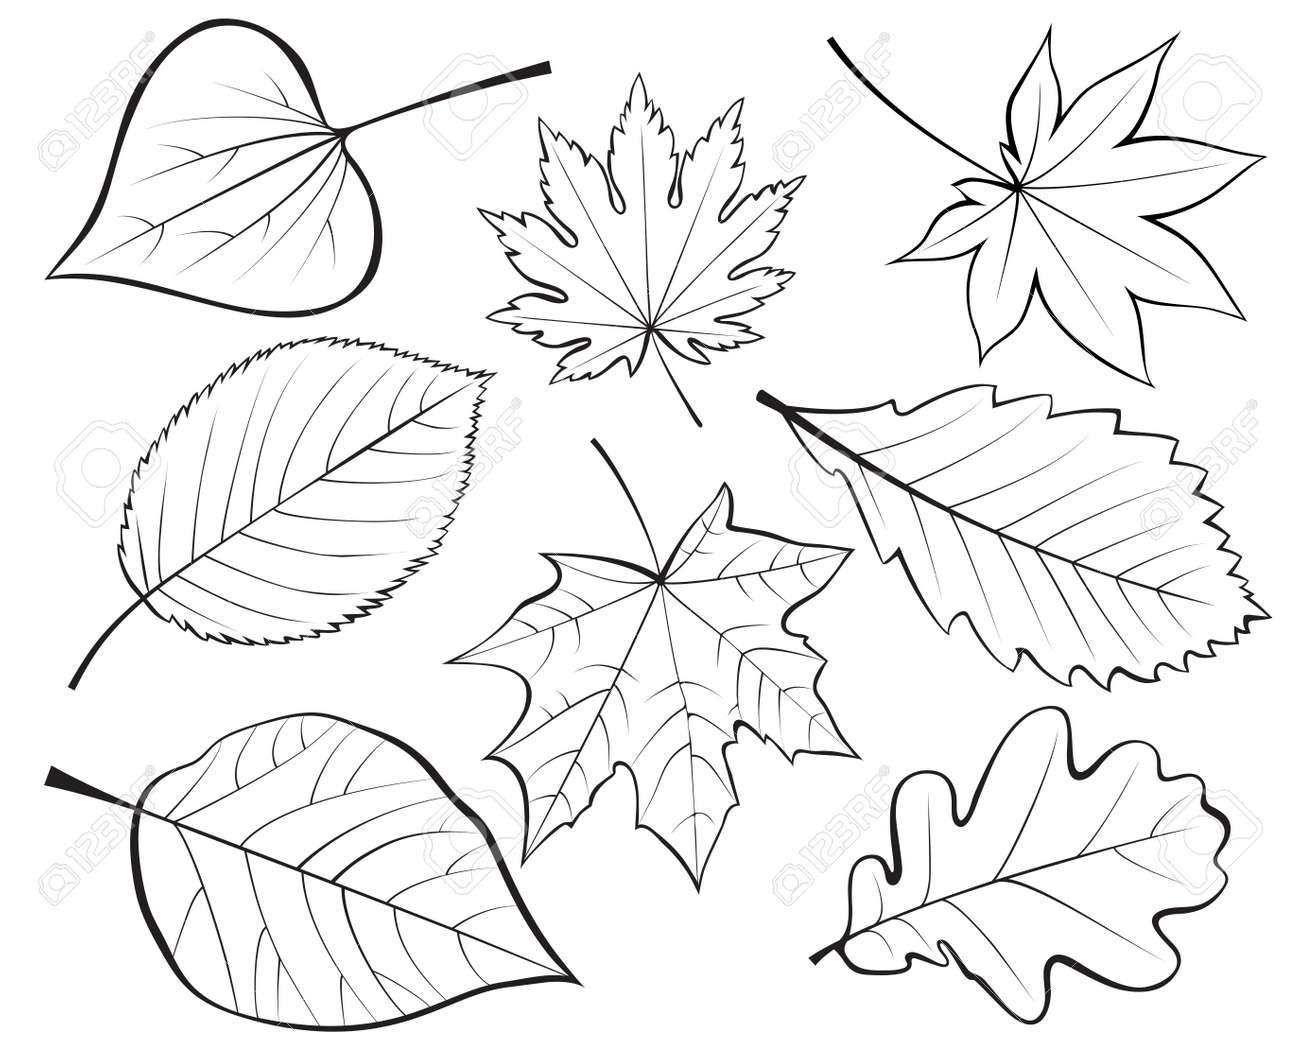 Uncategorized Leaves To Draw p contour line leafs 3 5 lessons tes teach set of leaves drawing royalty free cliparts vectors and